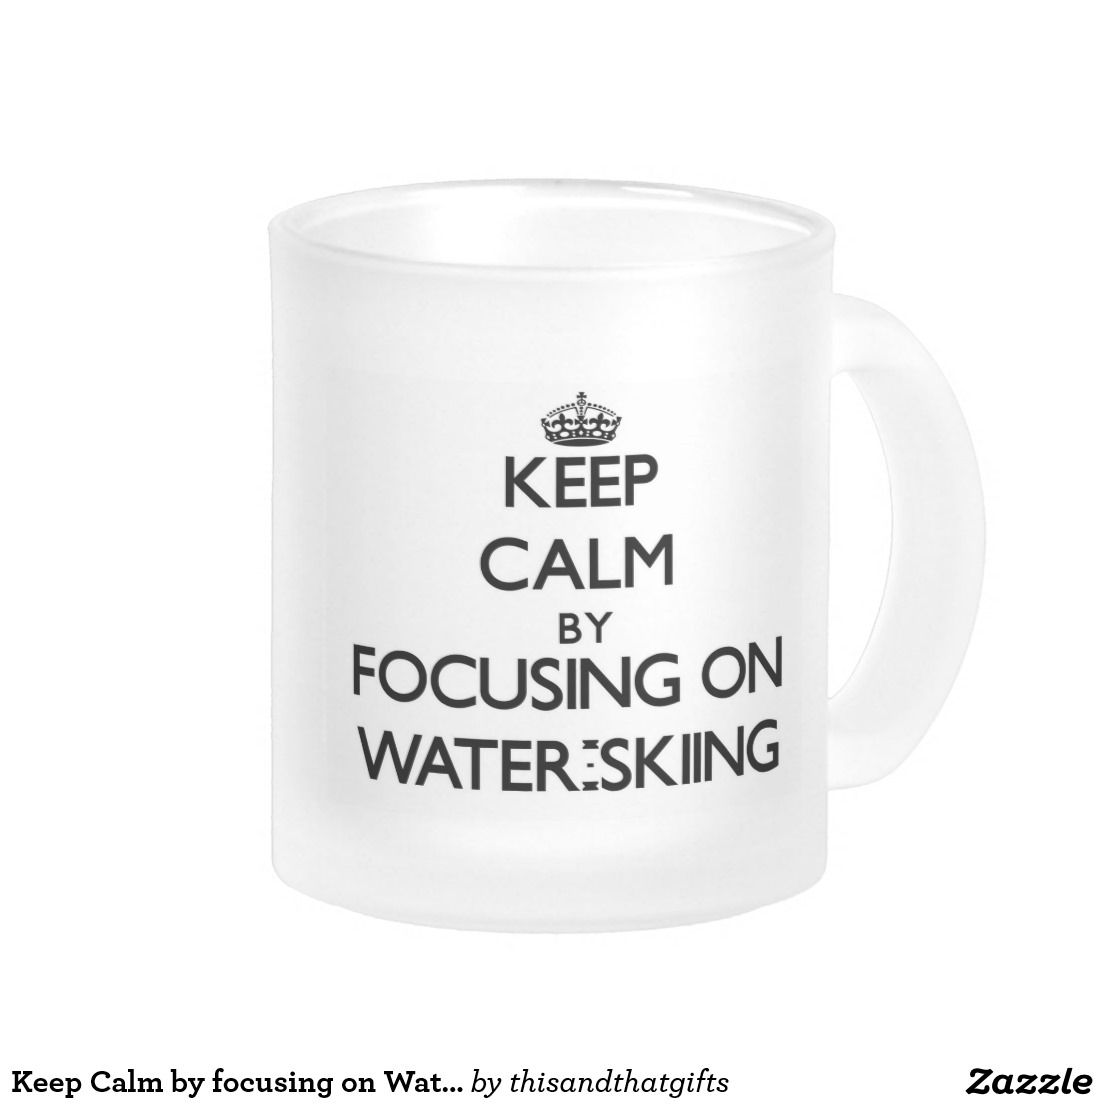 Keep Calm by focusing on Water-Skiing 10 Oz Frosted Glass Coffee Mug